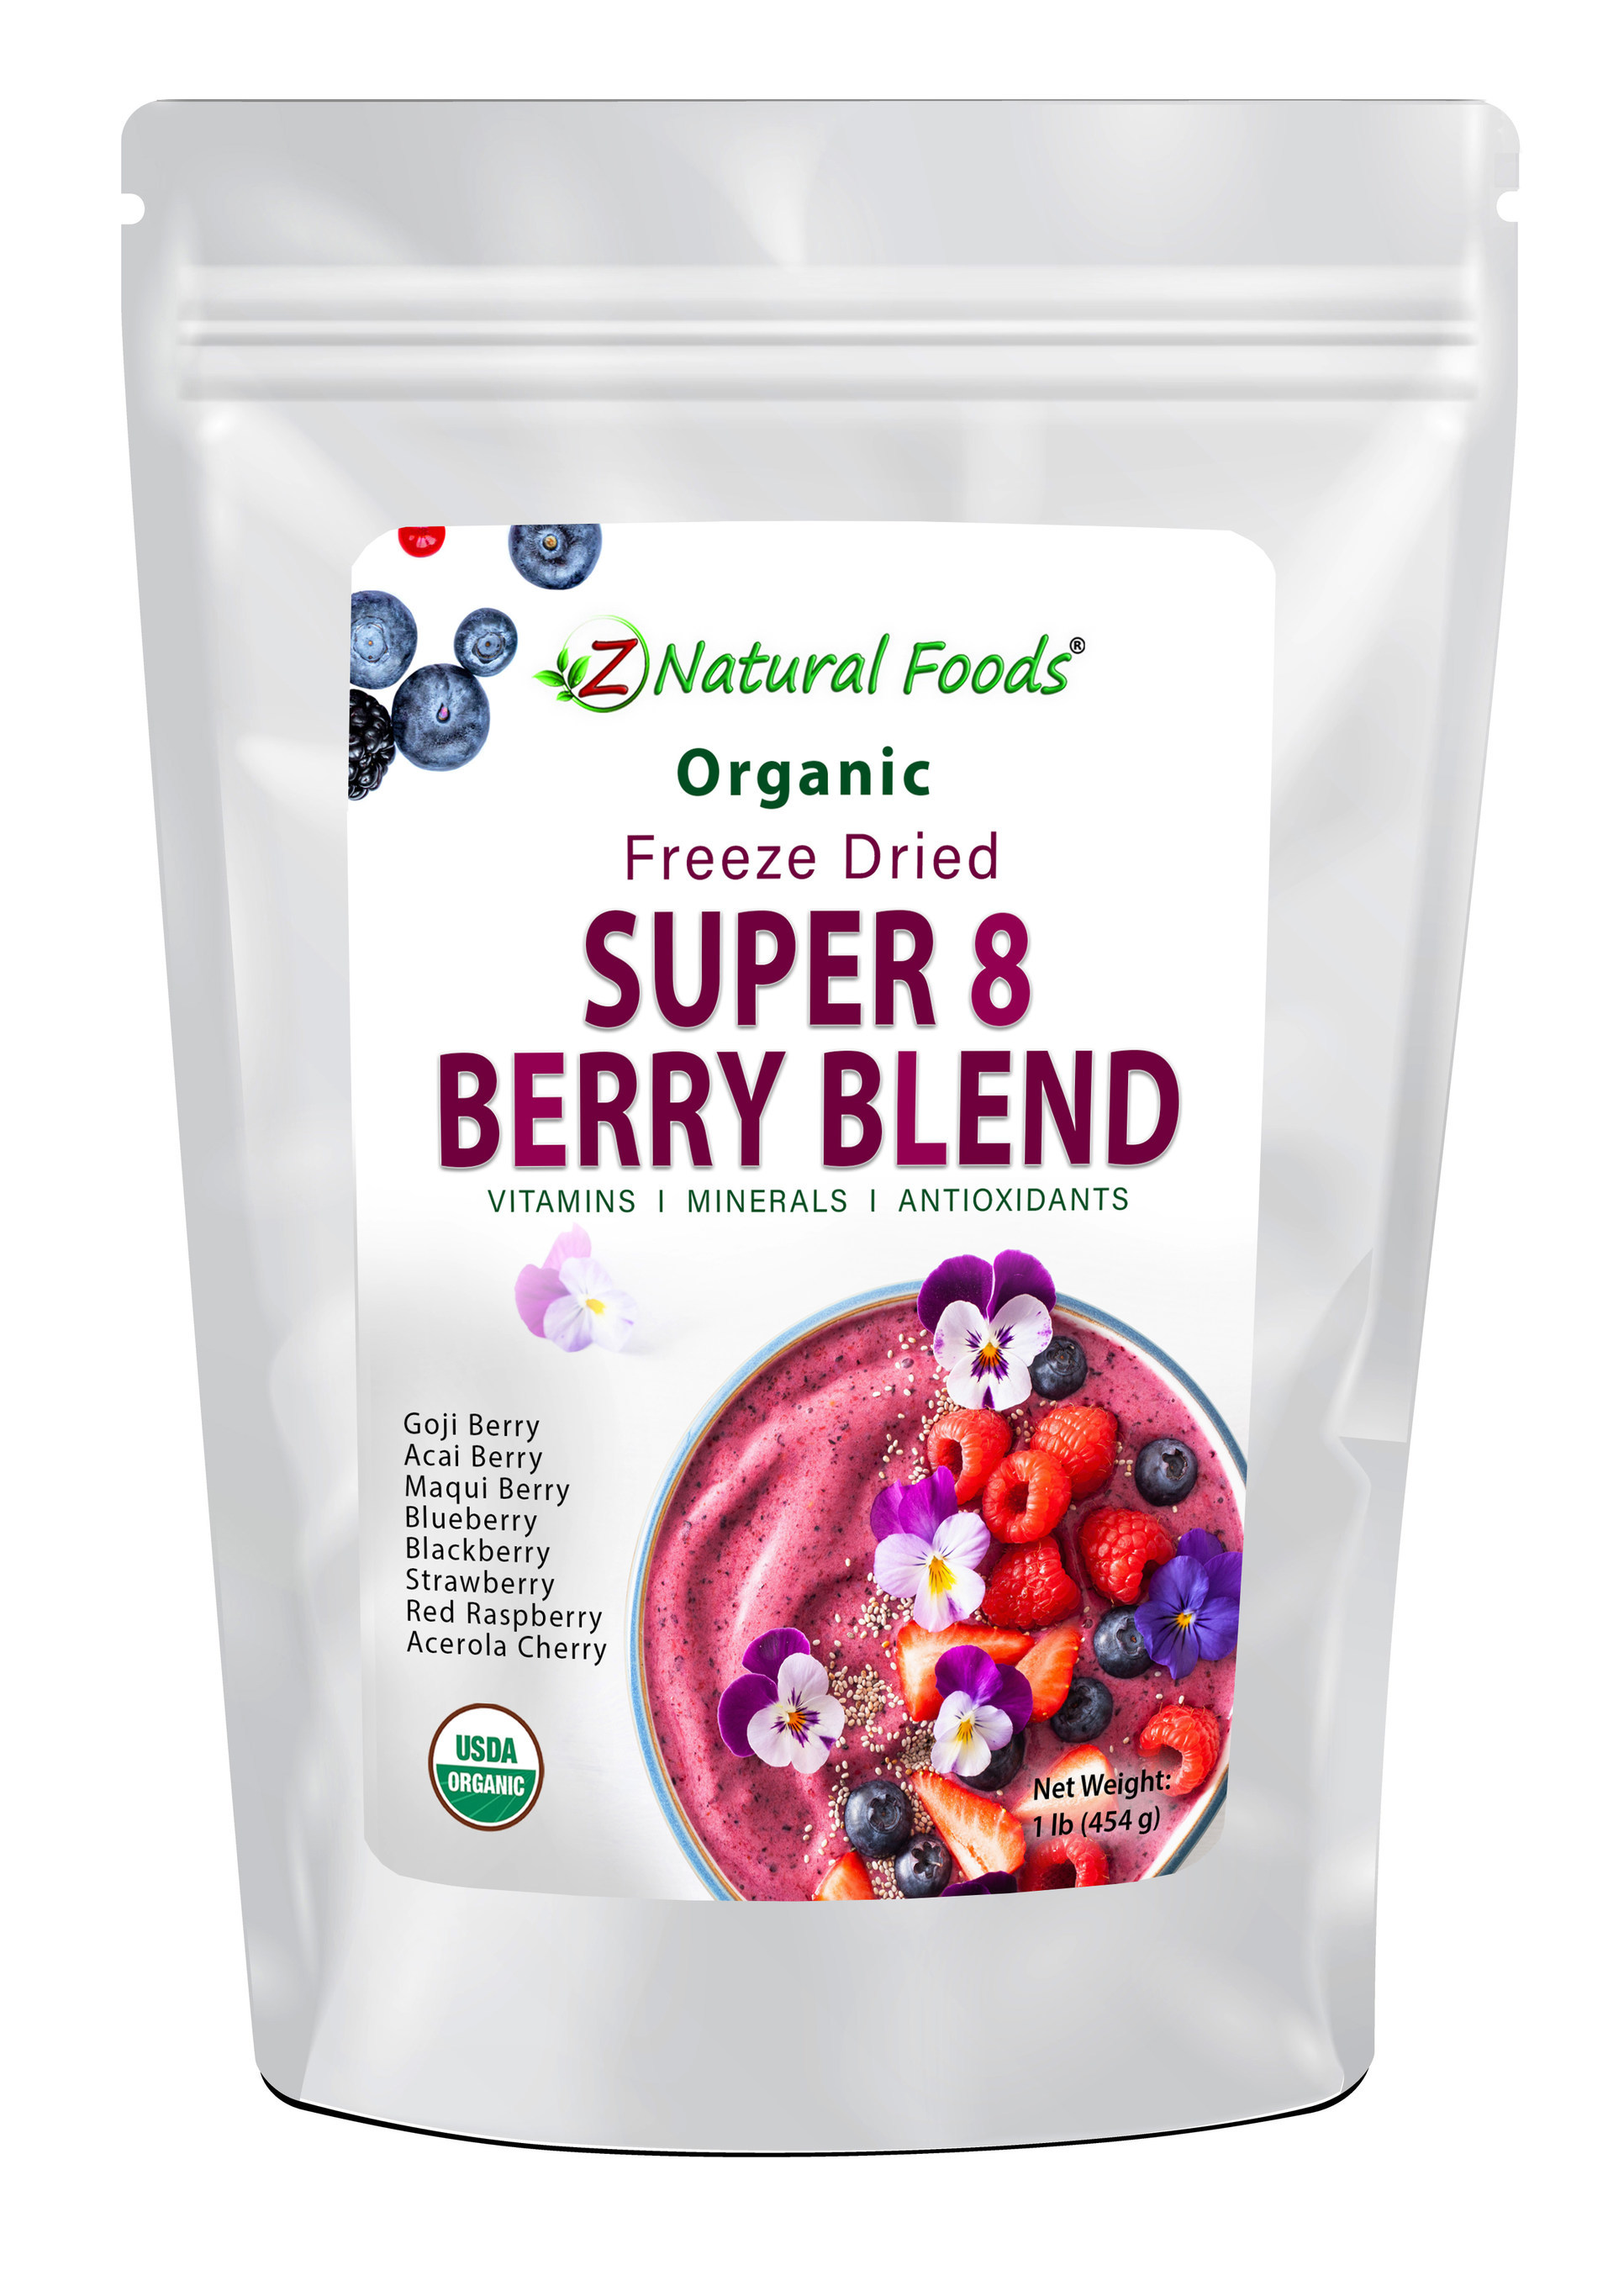 Z Natural Foods Announces New Organic Freeze Dried Berry Blend